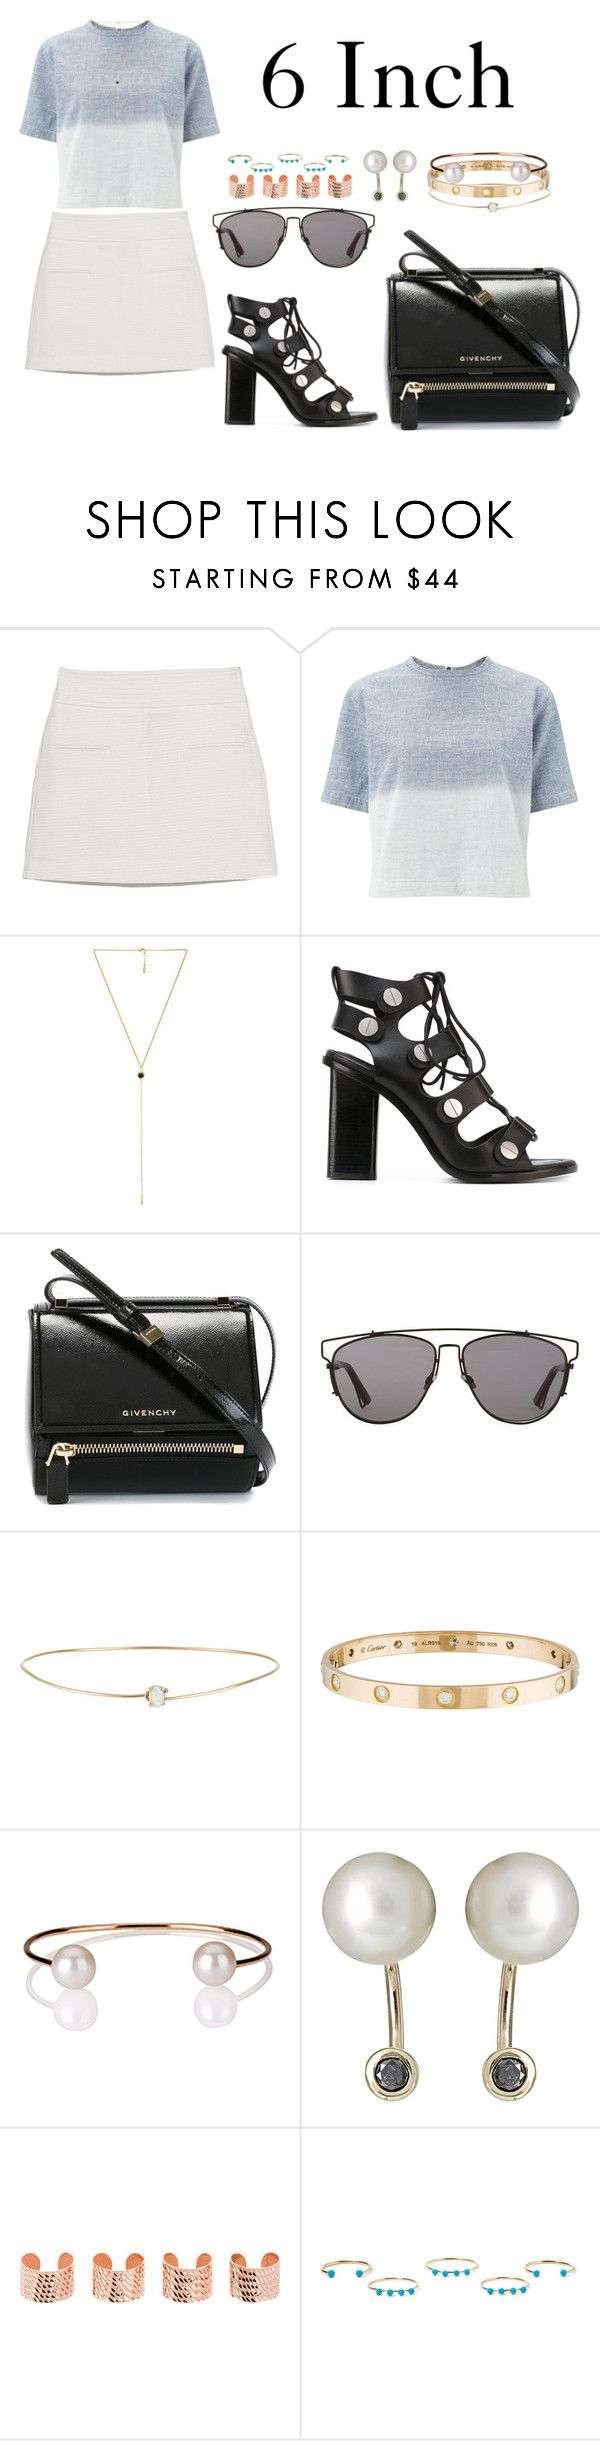 """6 Inch"" by anaelle2 ❤ liked on Polyvore featuring MANGO, rag & bone, Ettika, Alexander Wang, Givenchy, Christian Dior, Loren Stewart, Cartier, Letters By Zoe and Hirotaka"